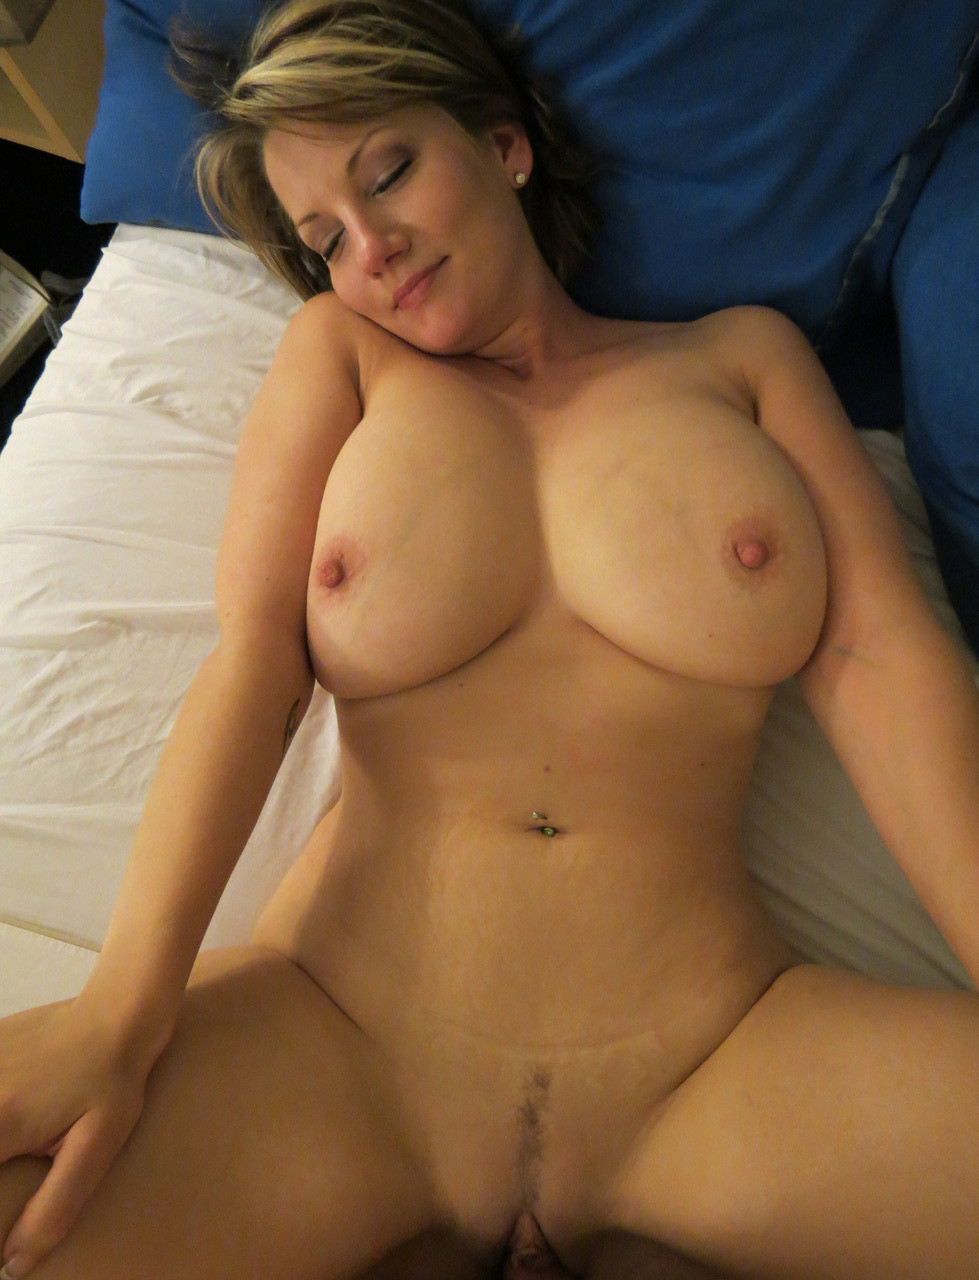 Milf real sex